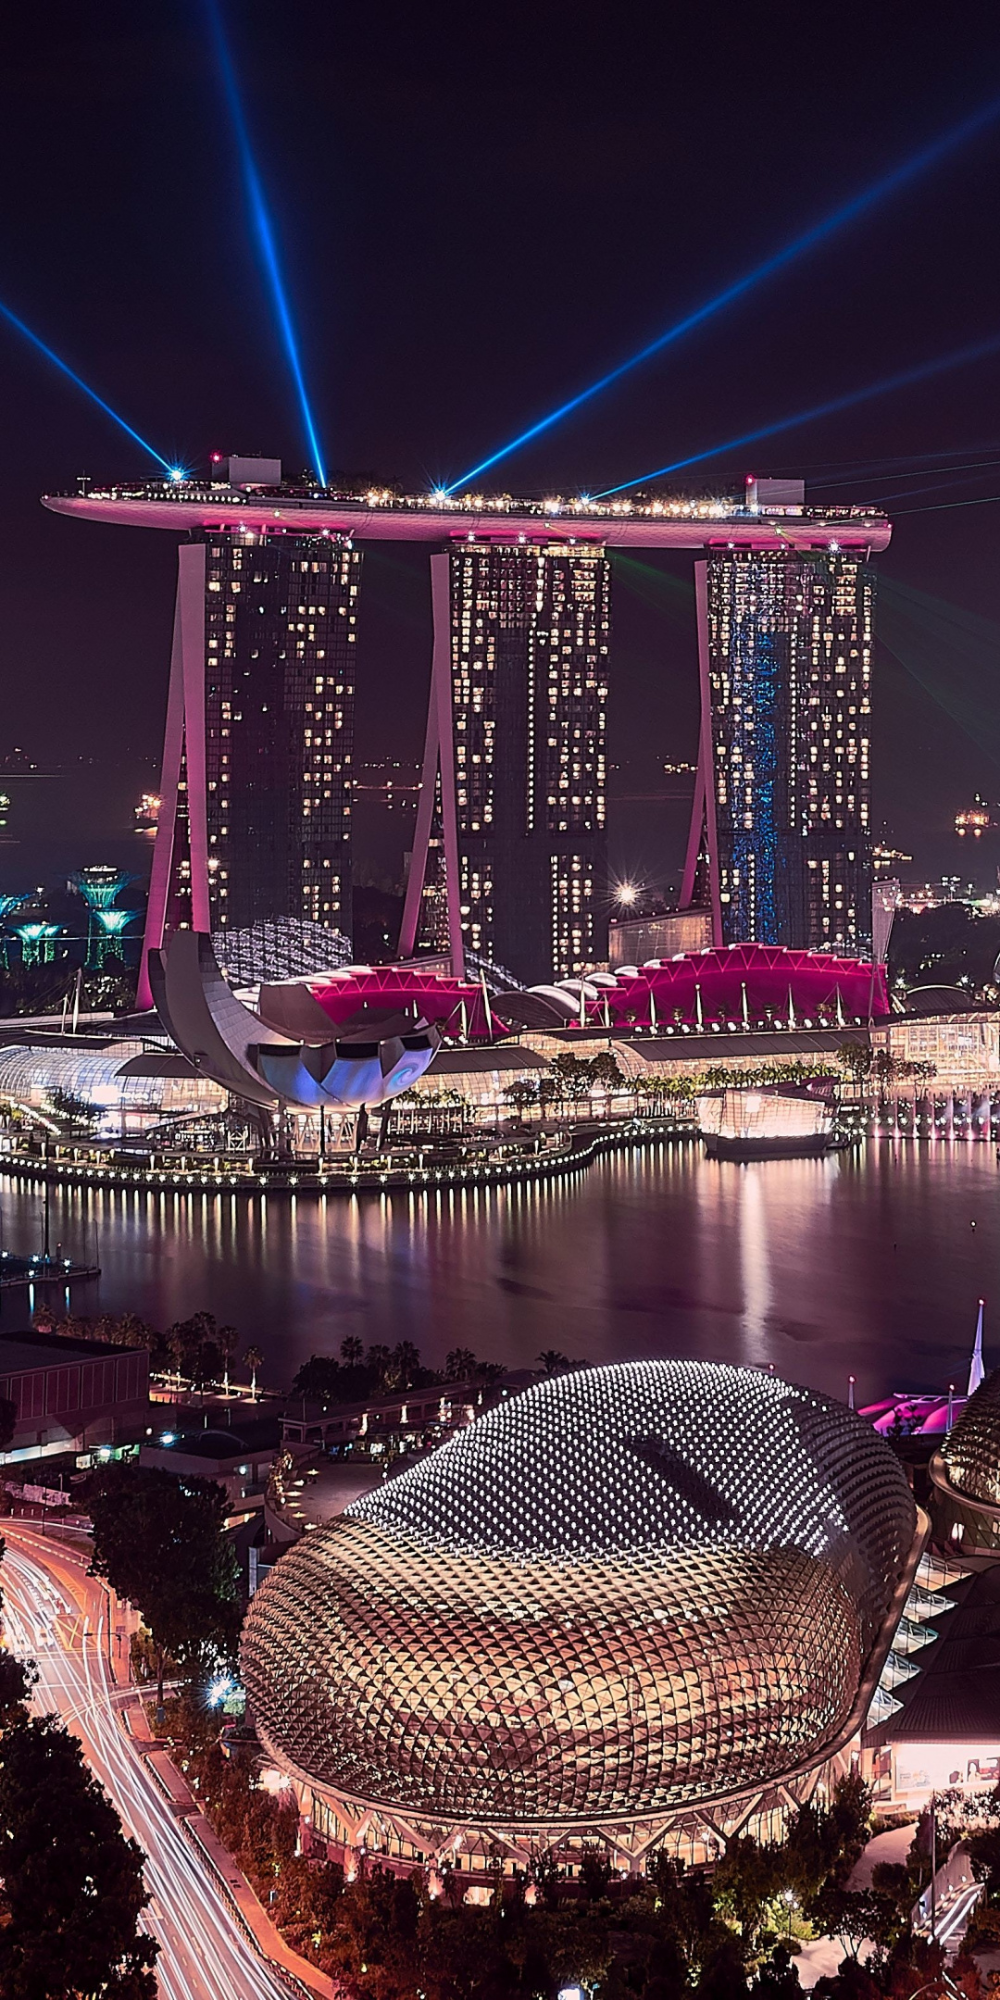 Download 1080x2160 Wallpaper Marina Bay Sands Singapore Cityscape Buildings Aerial View Honor 7x Honor 9 In 2020 Singapore Travel Sands Singapore Singapore City